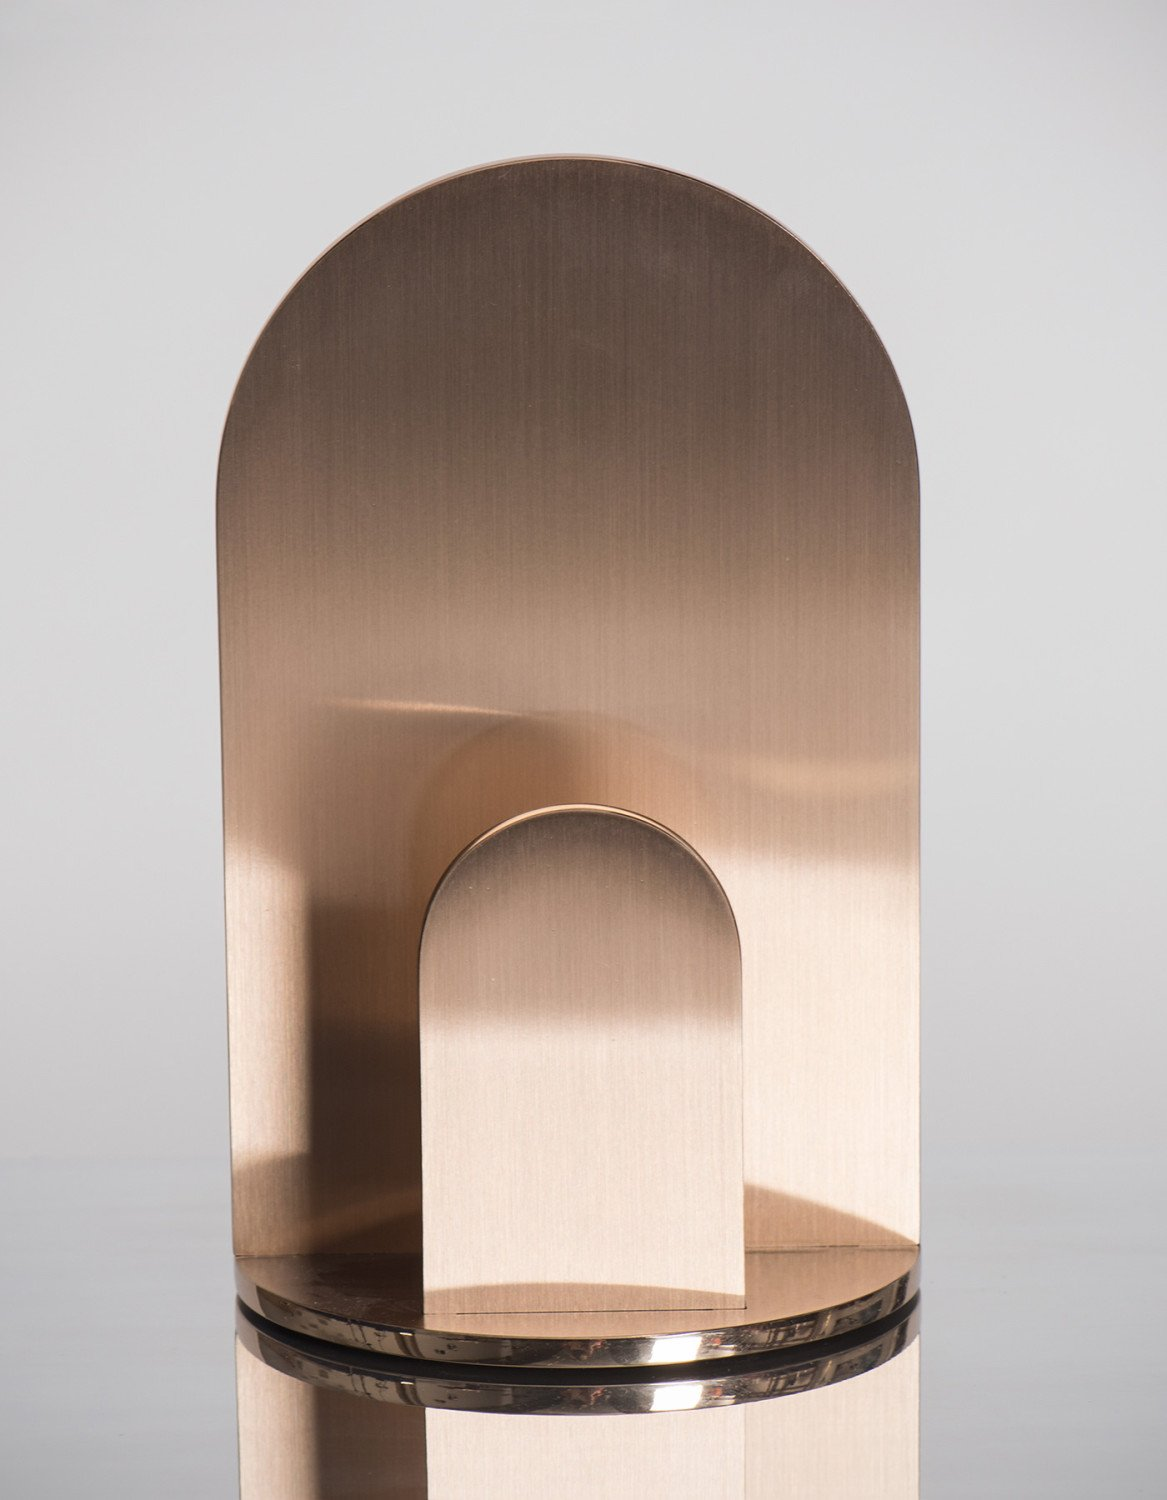 Jonathan Nesci |  Gae - bronze candle holder